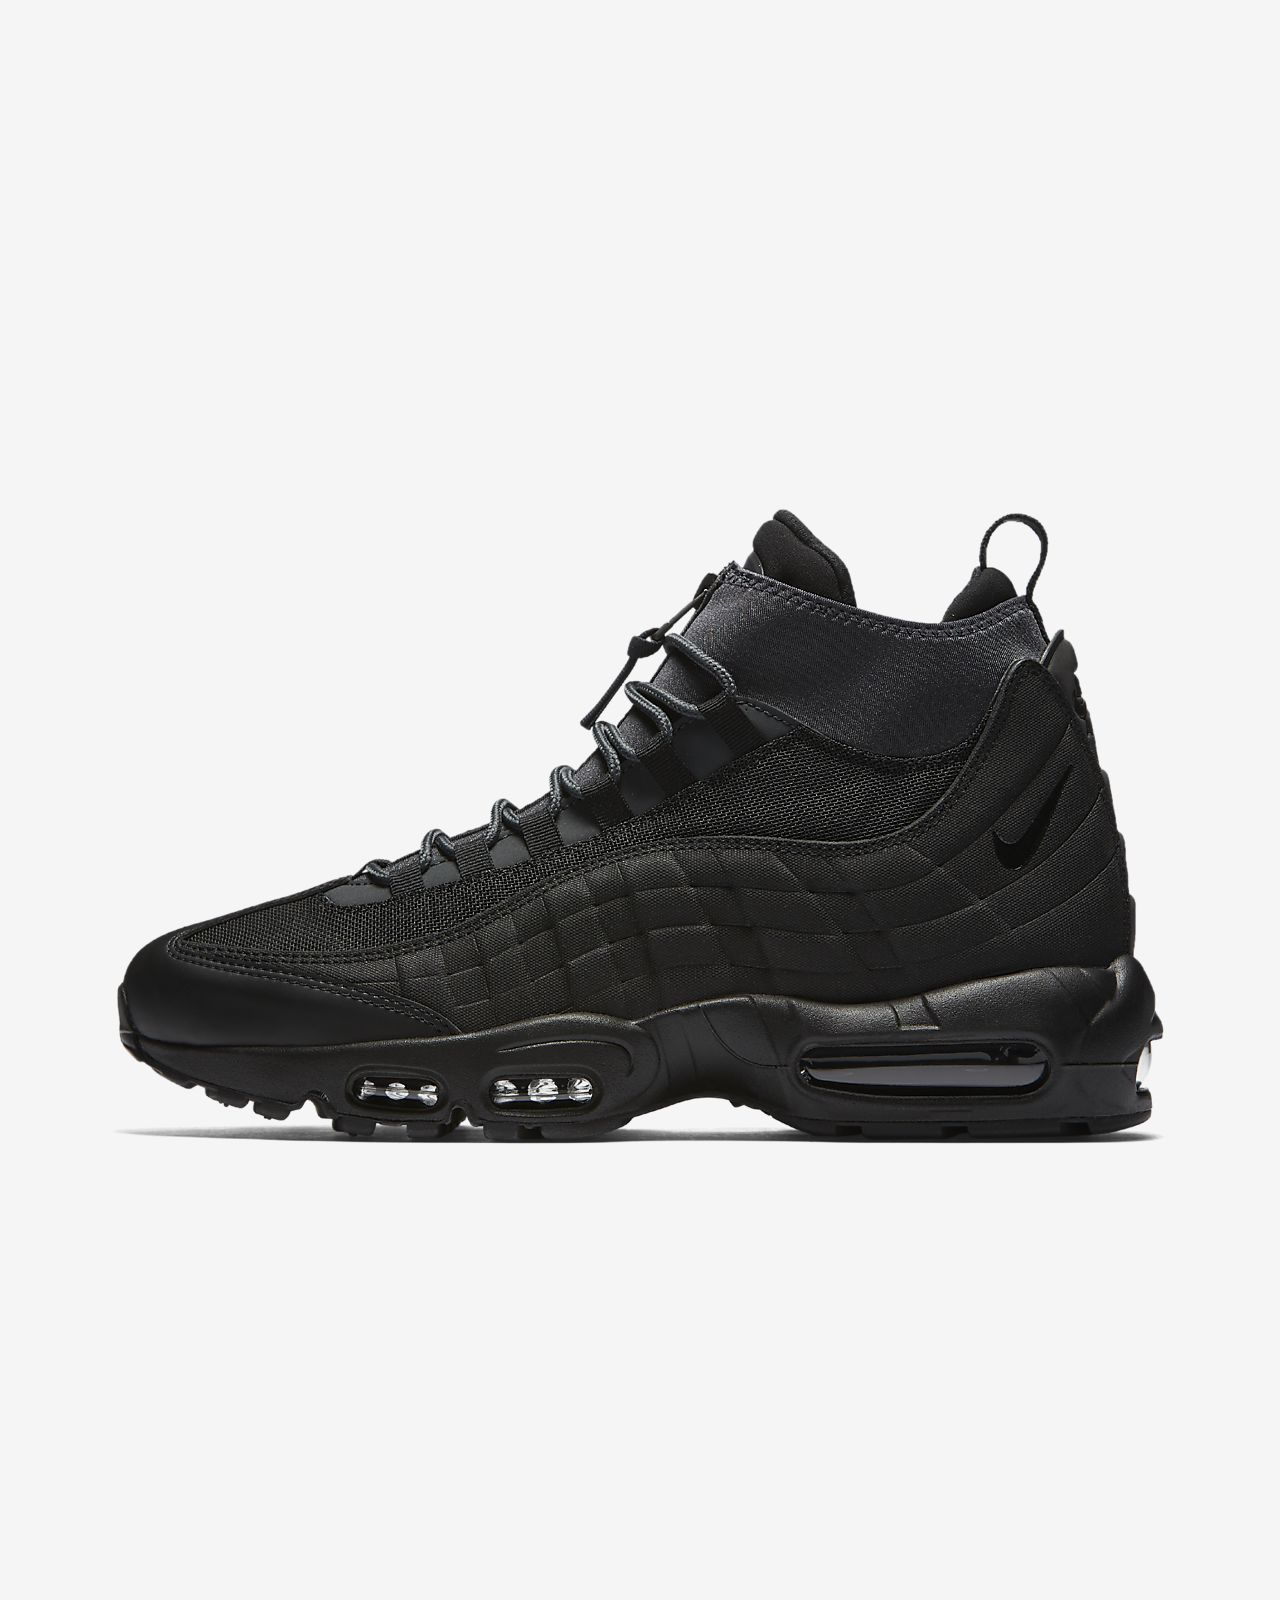 Nike Air Max 95 SneakerBoot Herenboots